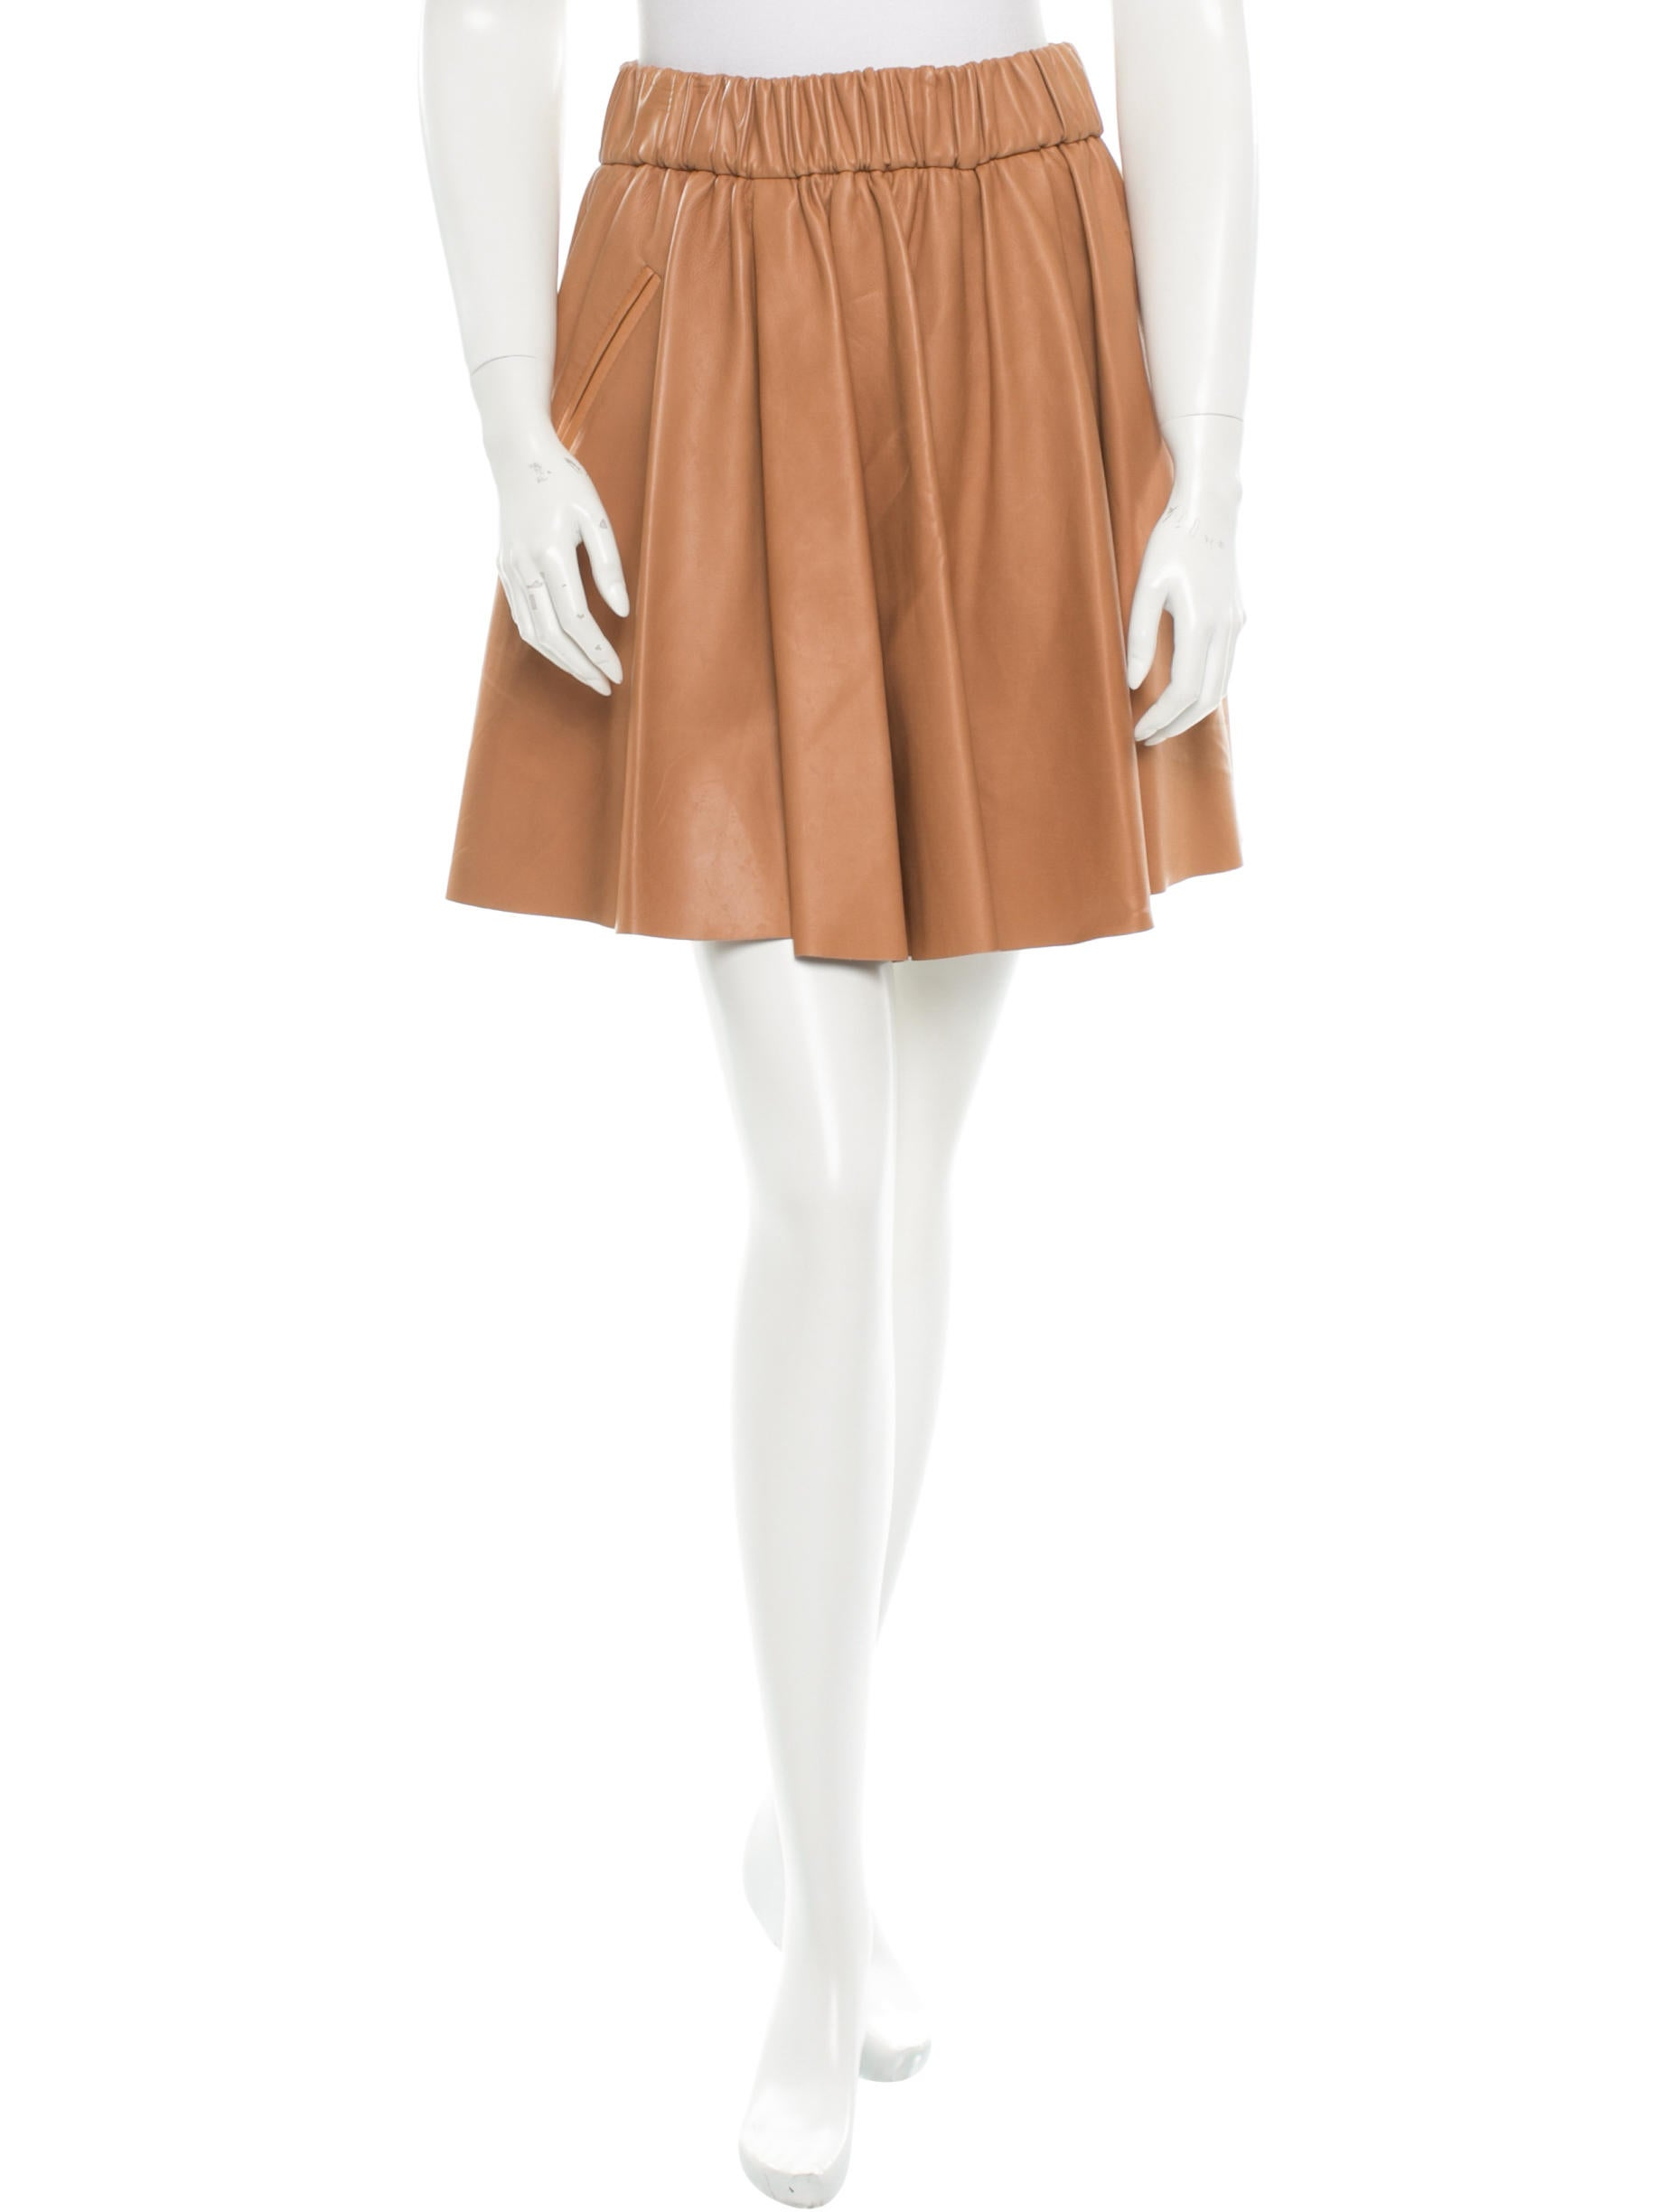 acne leather skirt clothing acn21826 the realreal